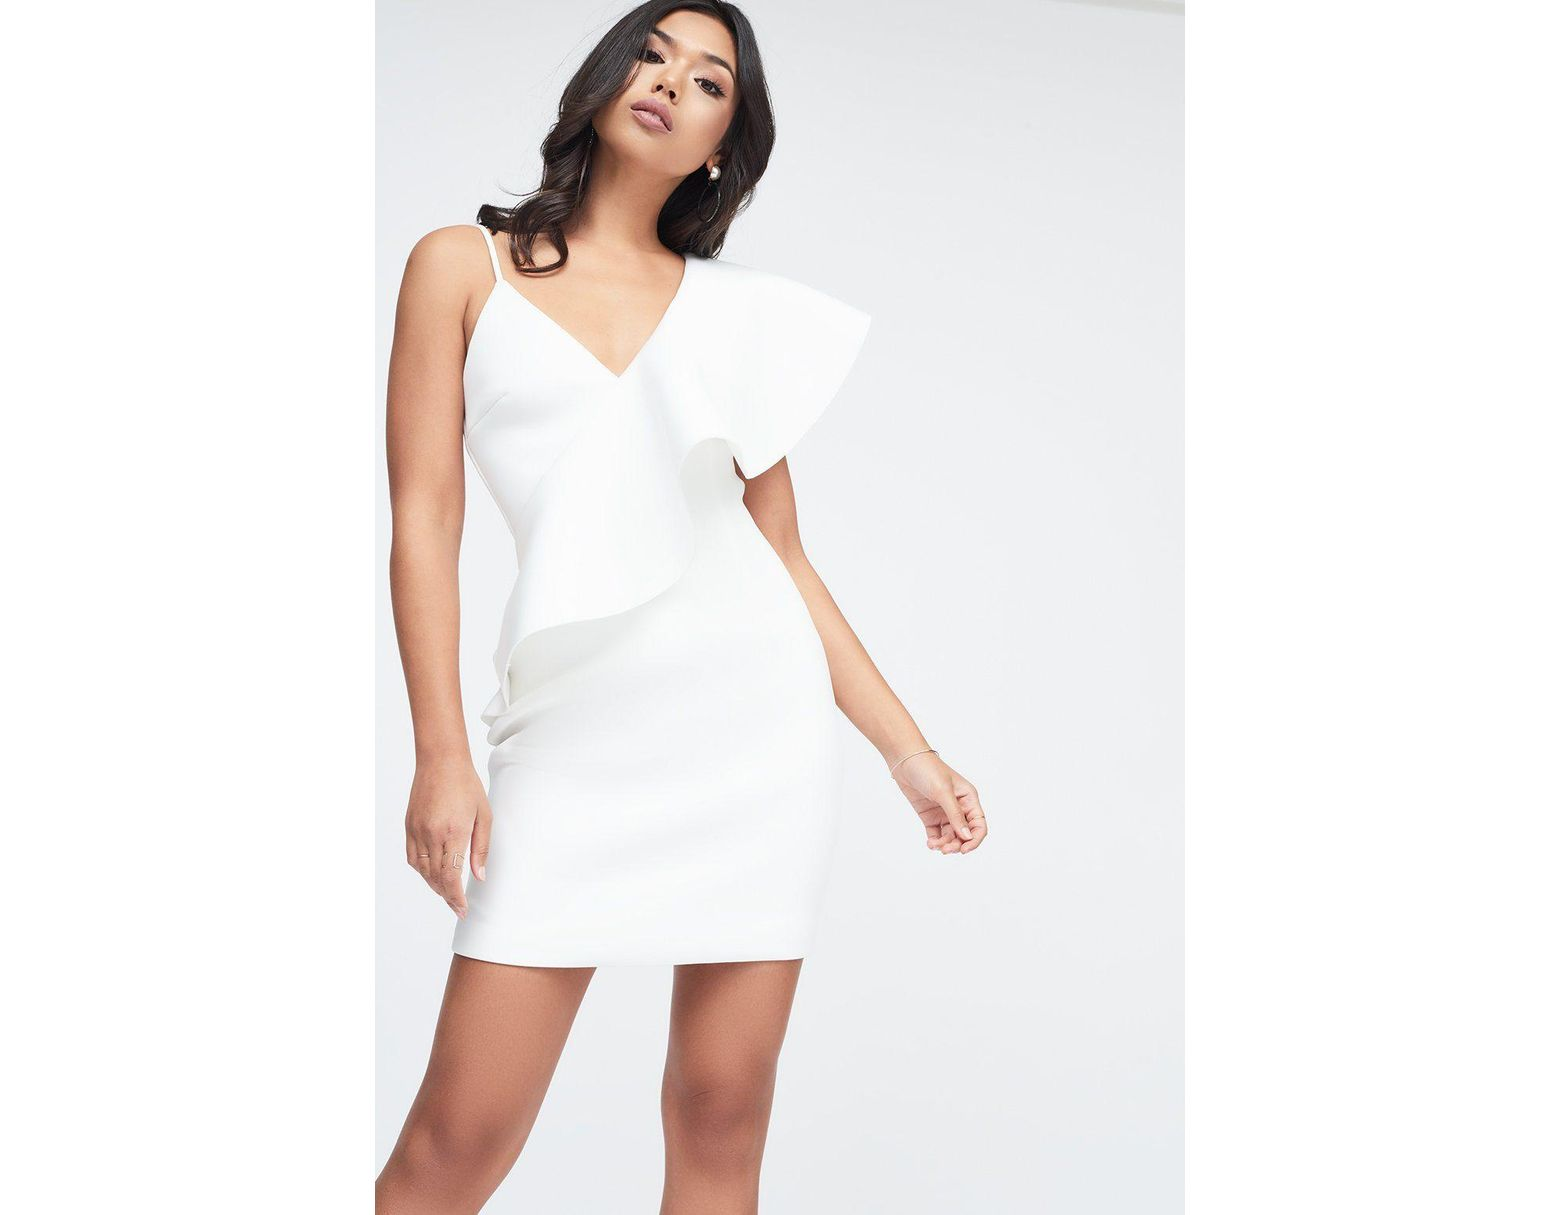 c50a1cf89f5 Lavish Alice Exaggerated One Shoulder Frill Scuba Mini Dress In White in  White - Lyst